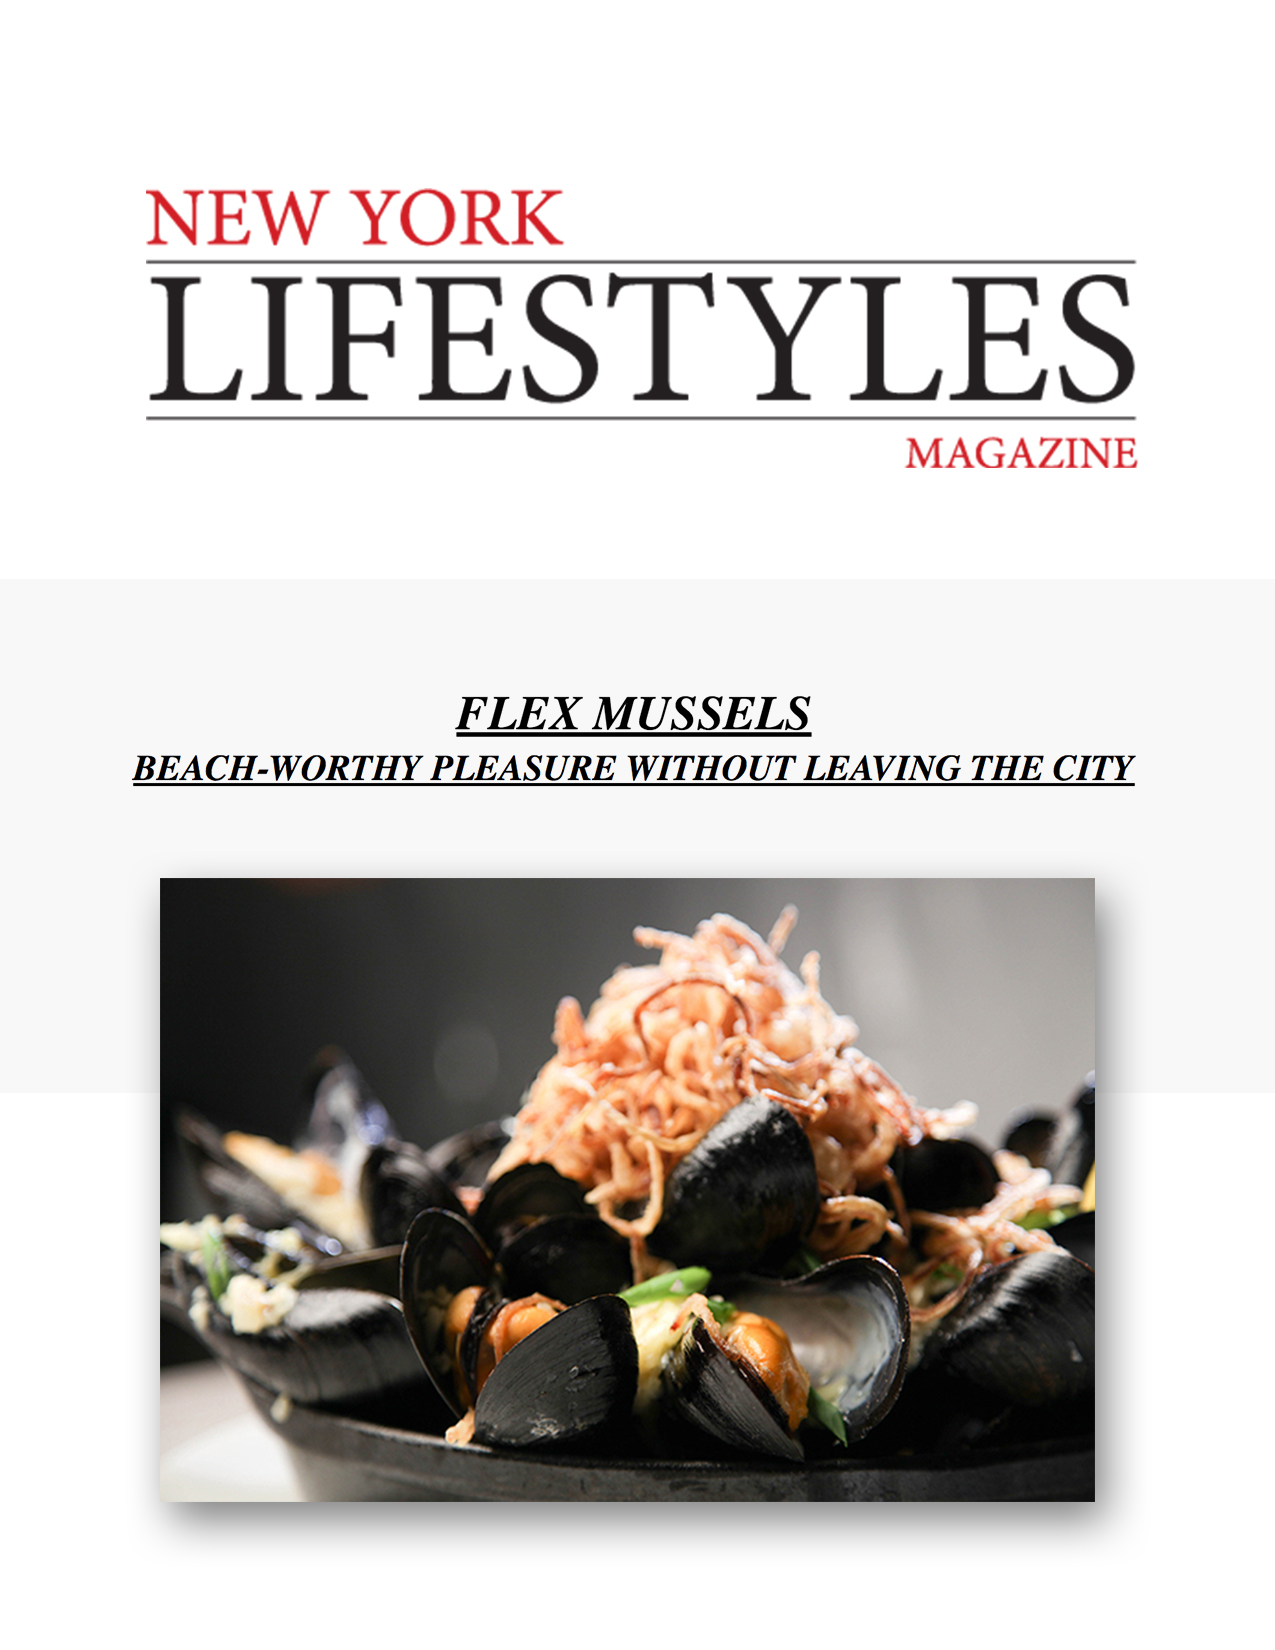 New York Lifestyles